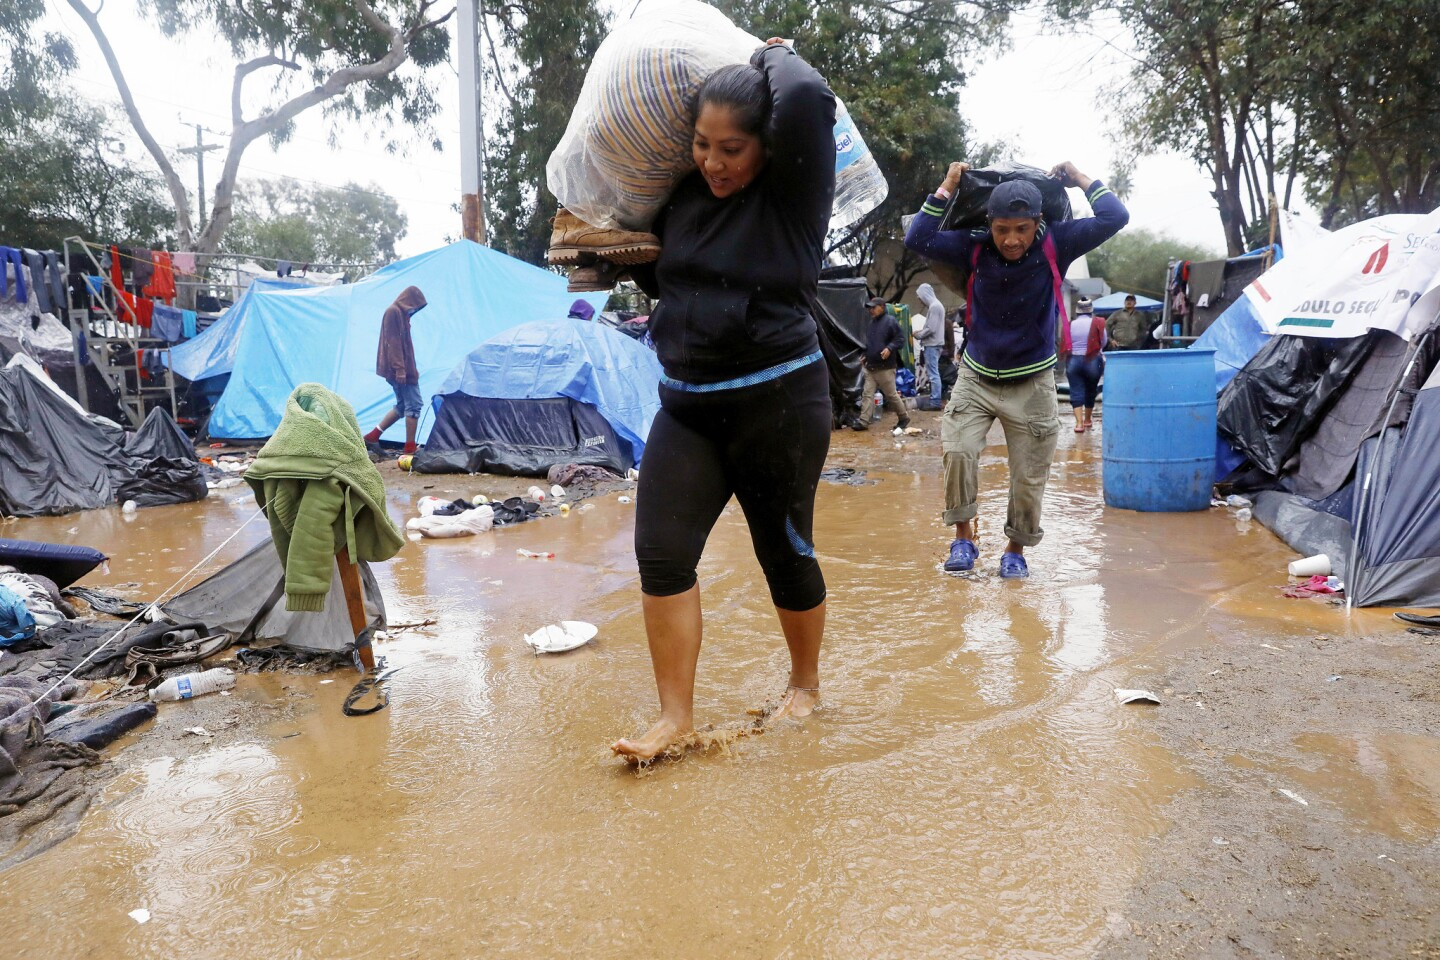 Rain drenches Tijuana migrant camp